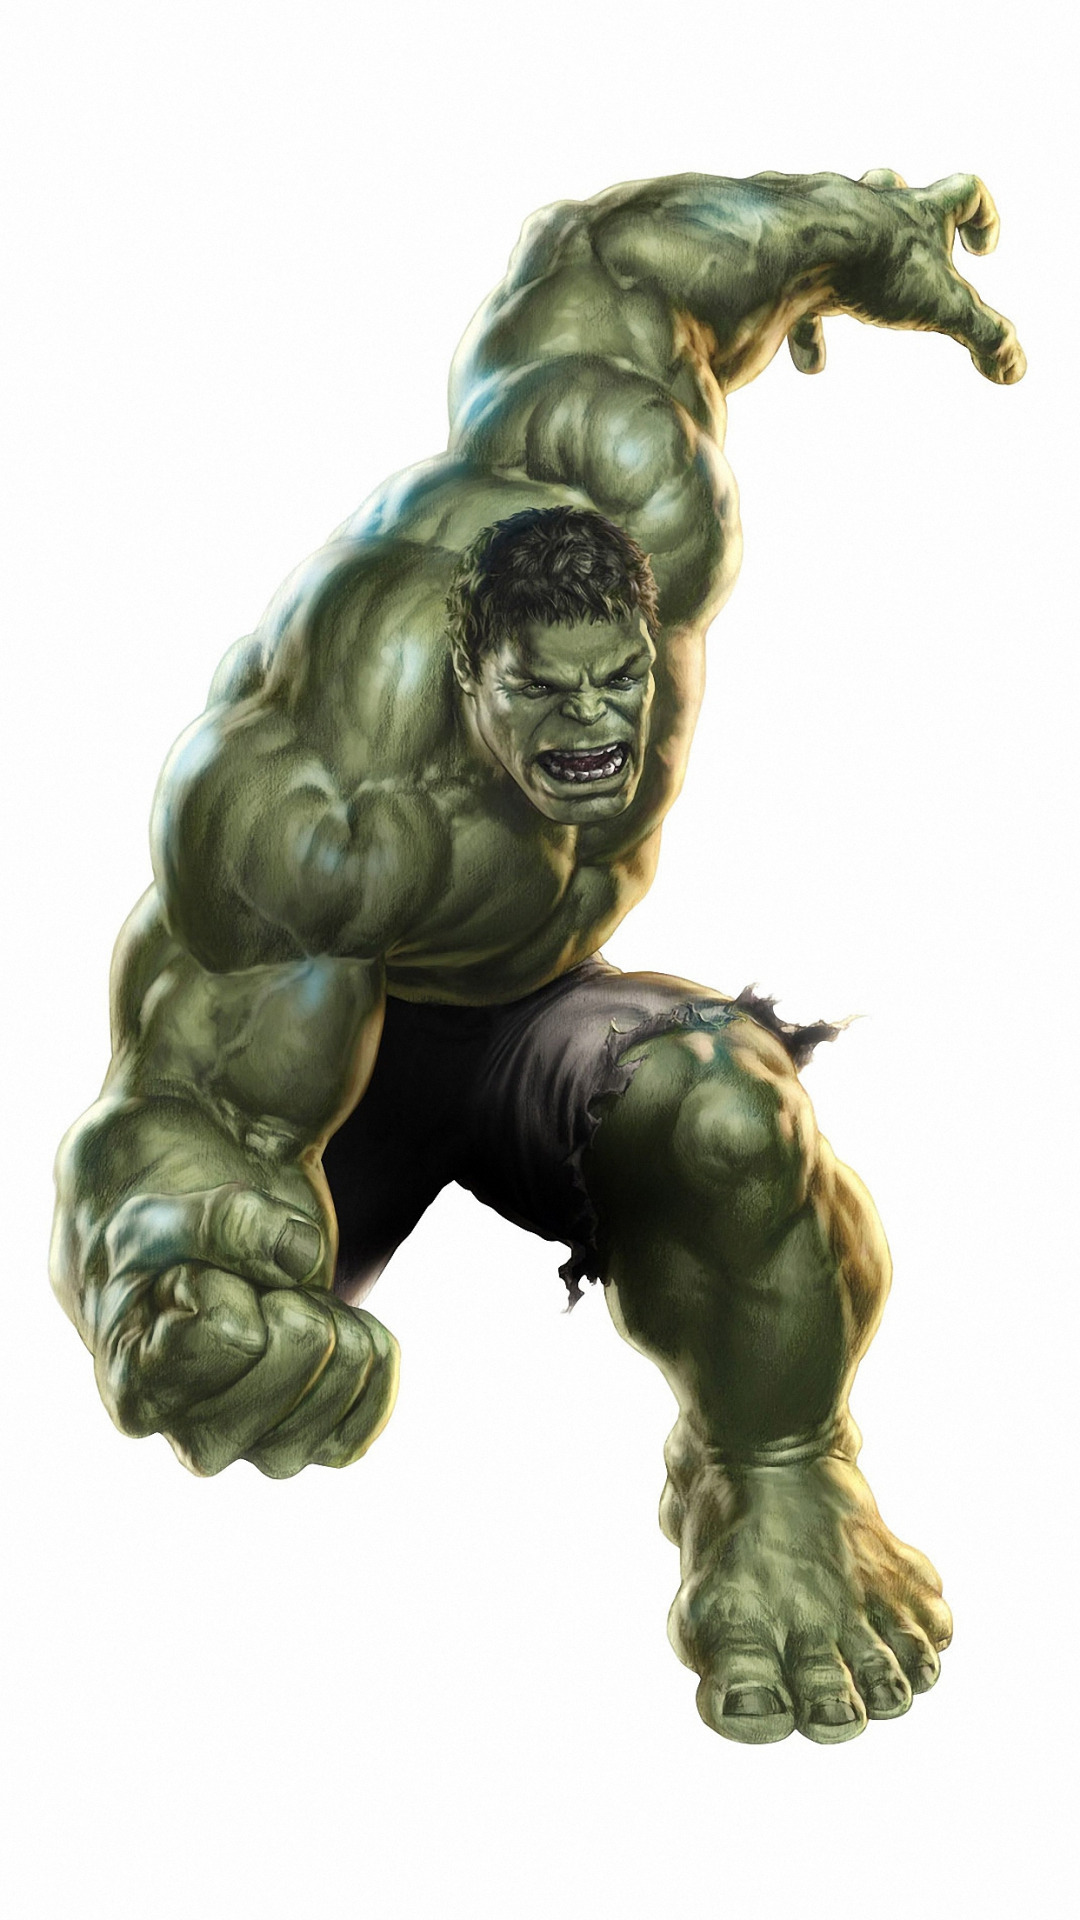 6s plus 3d hulk iphone 6s plus wallpapers hd 1080x1920